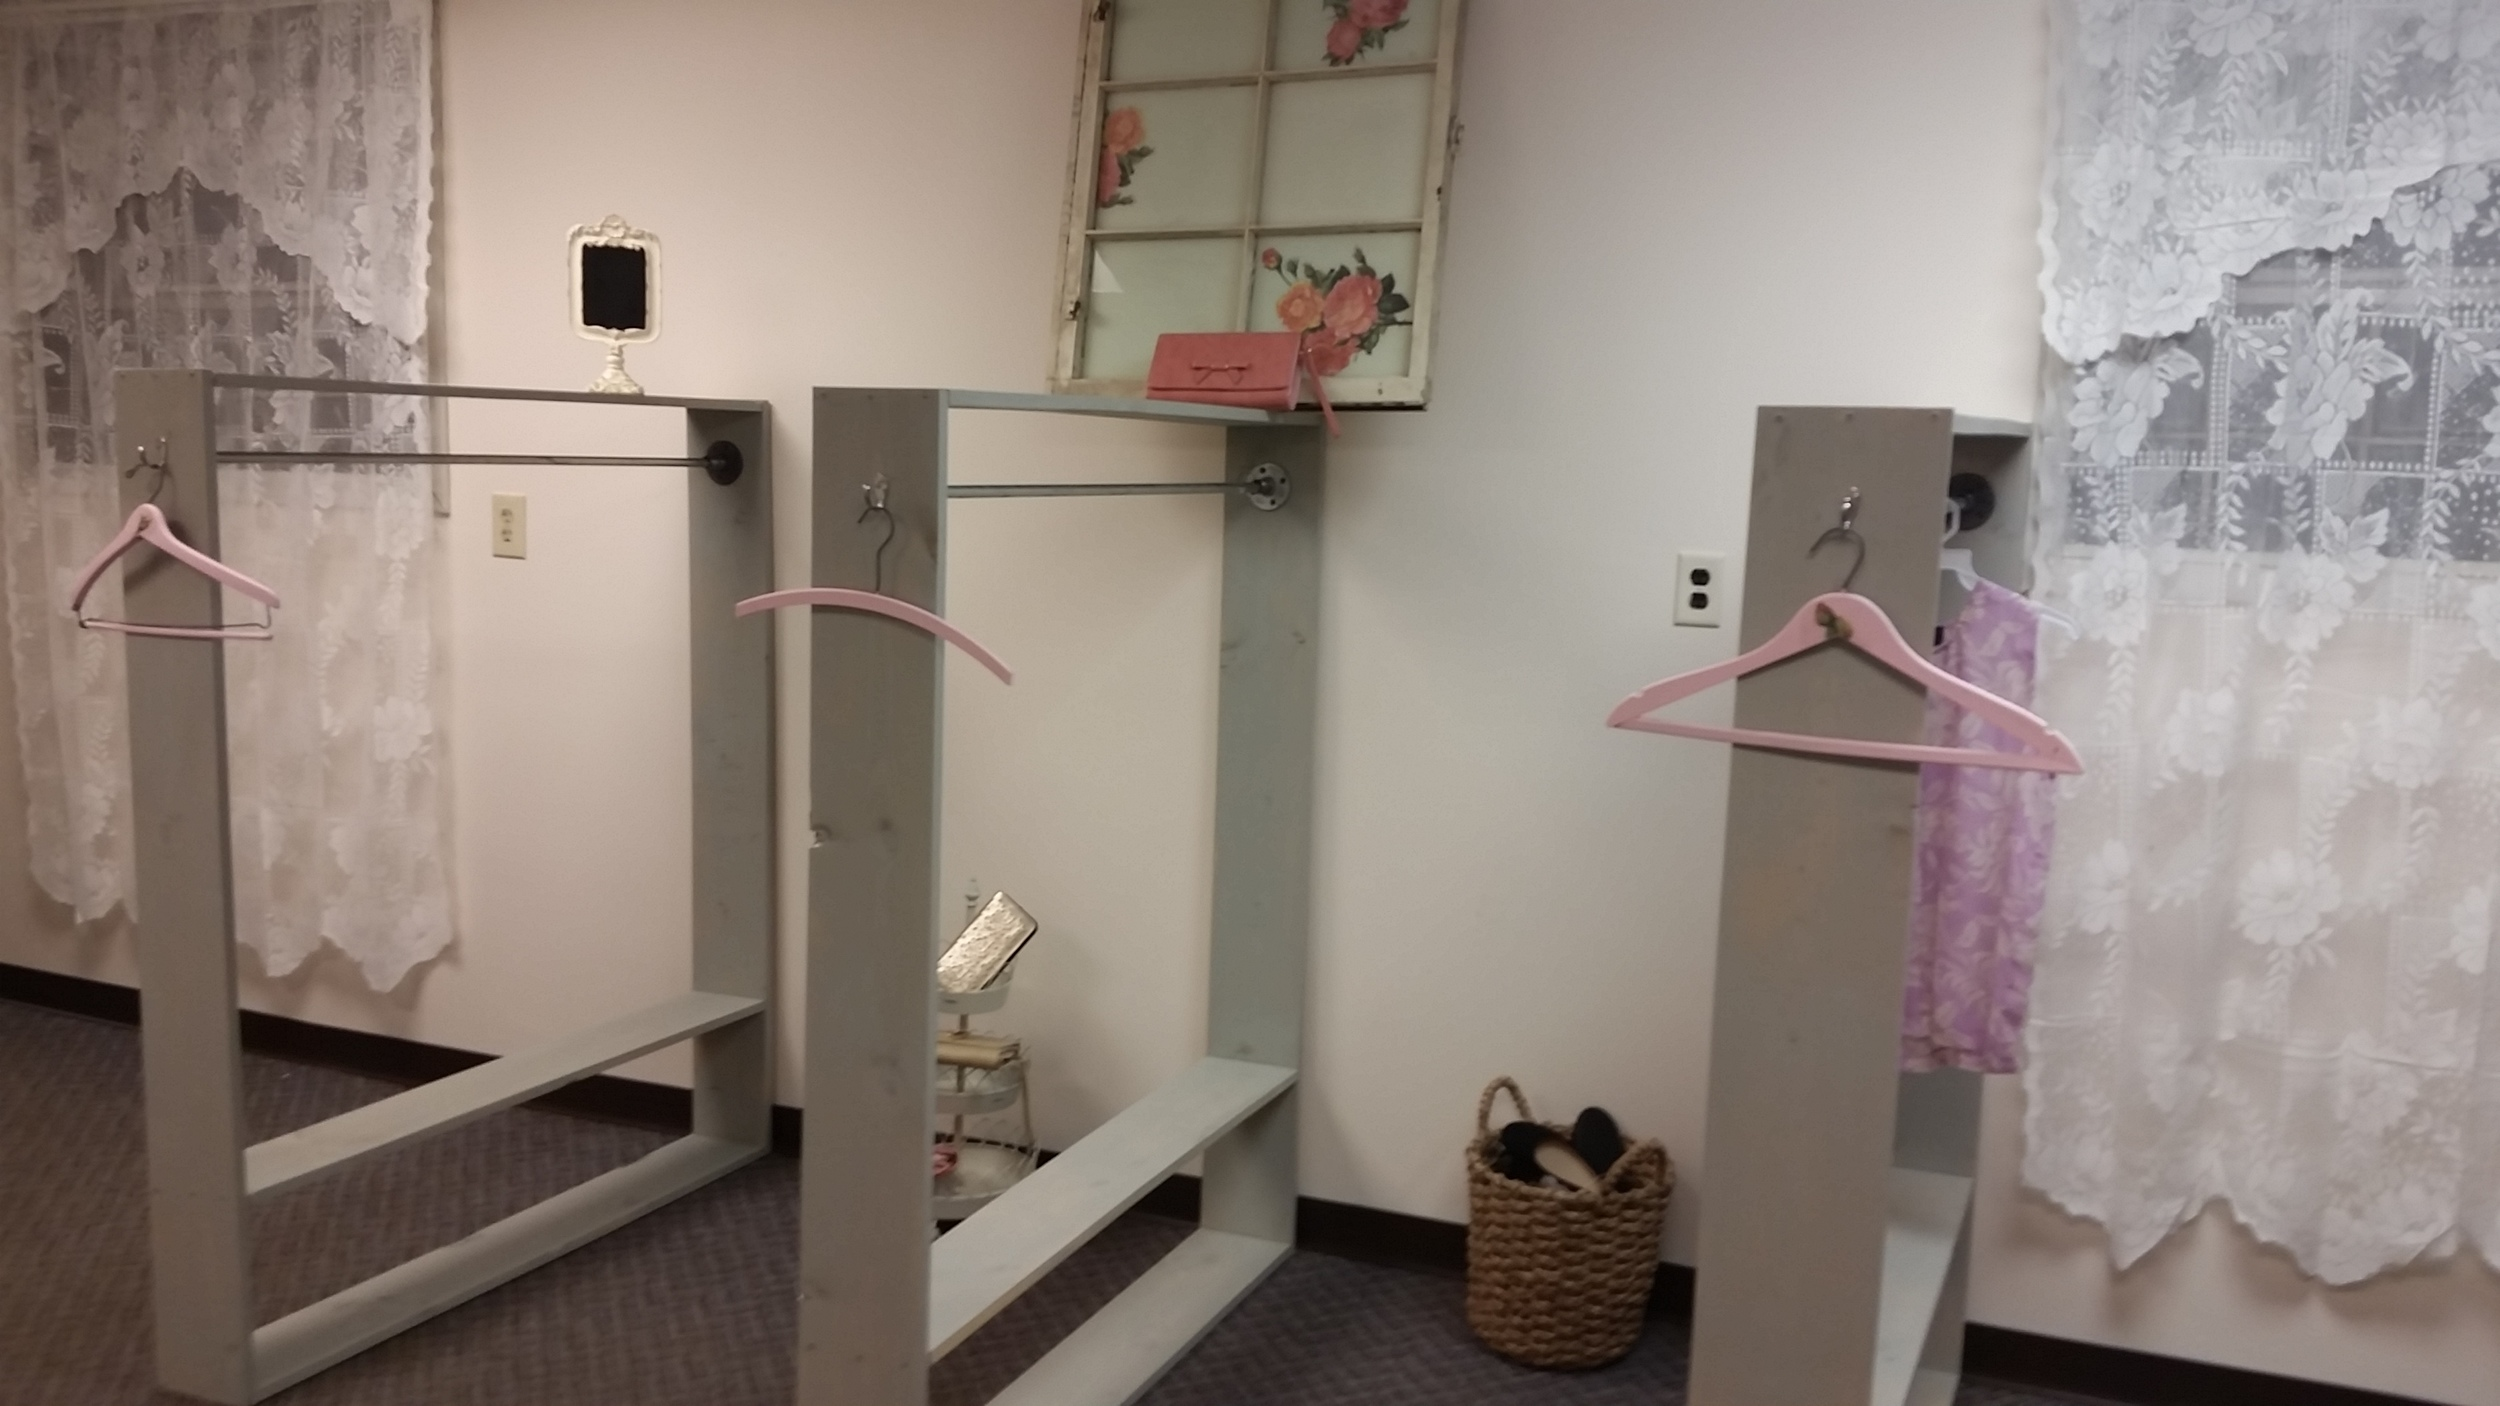 Wooden racks with galvanized pipe fittings and conduit, painted out in gray provided the racks needed for clothing.  Vintage wooden hangers painted pink and decoupaged with floral images provide a place to showcase special outfits.